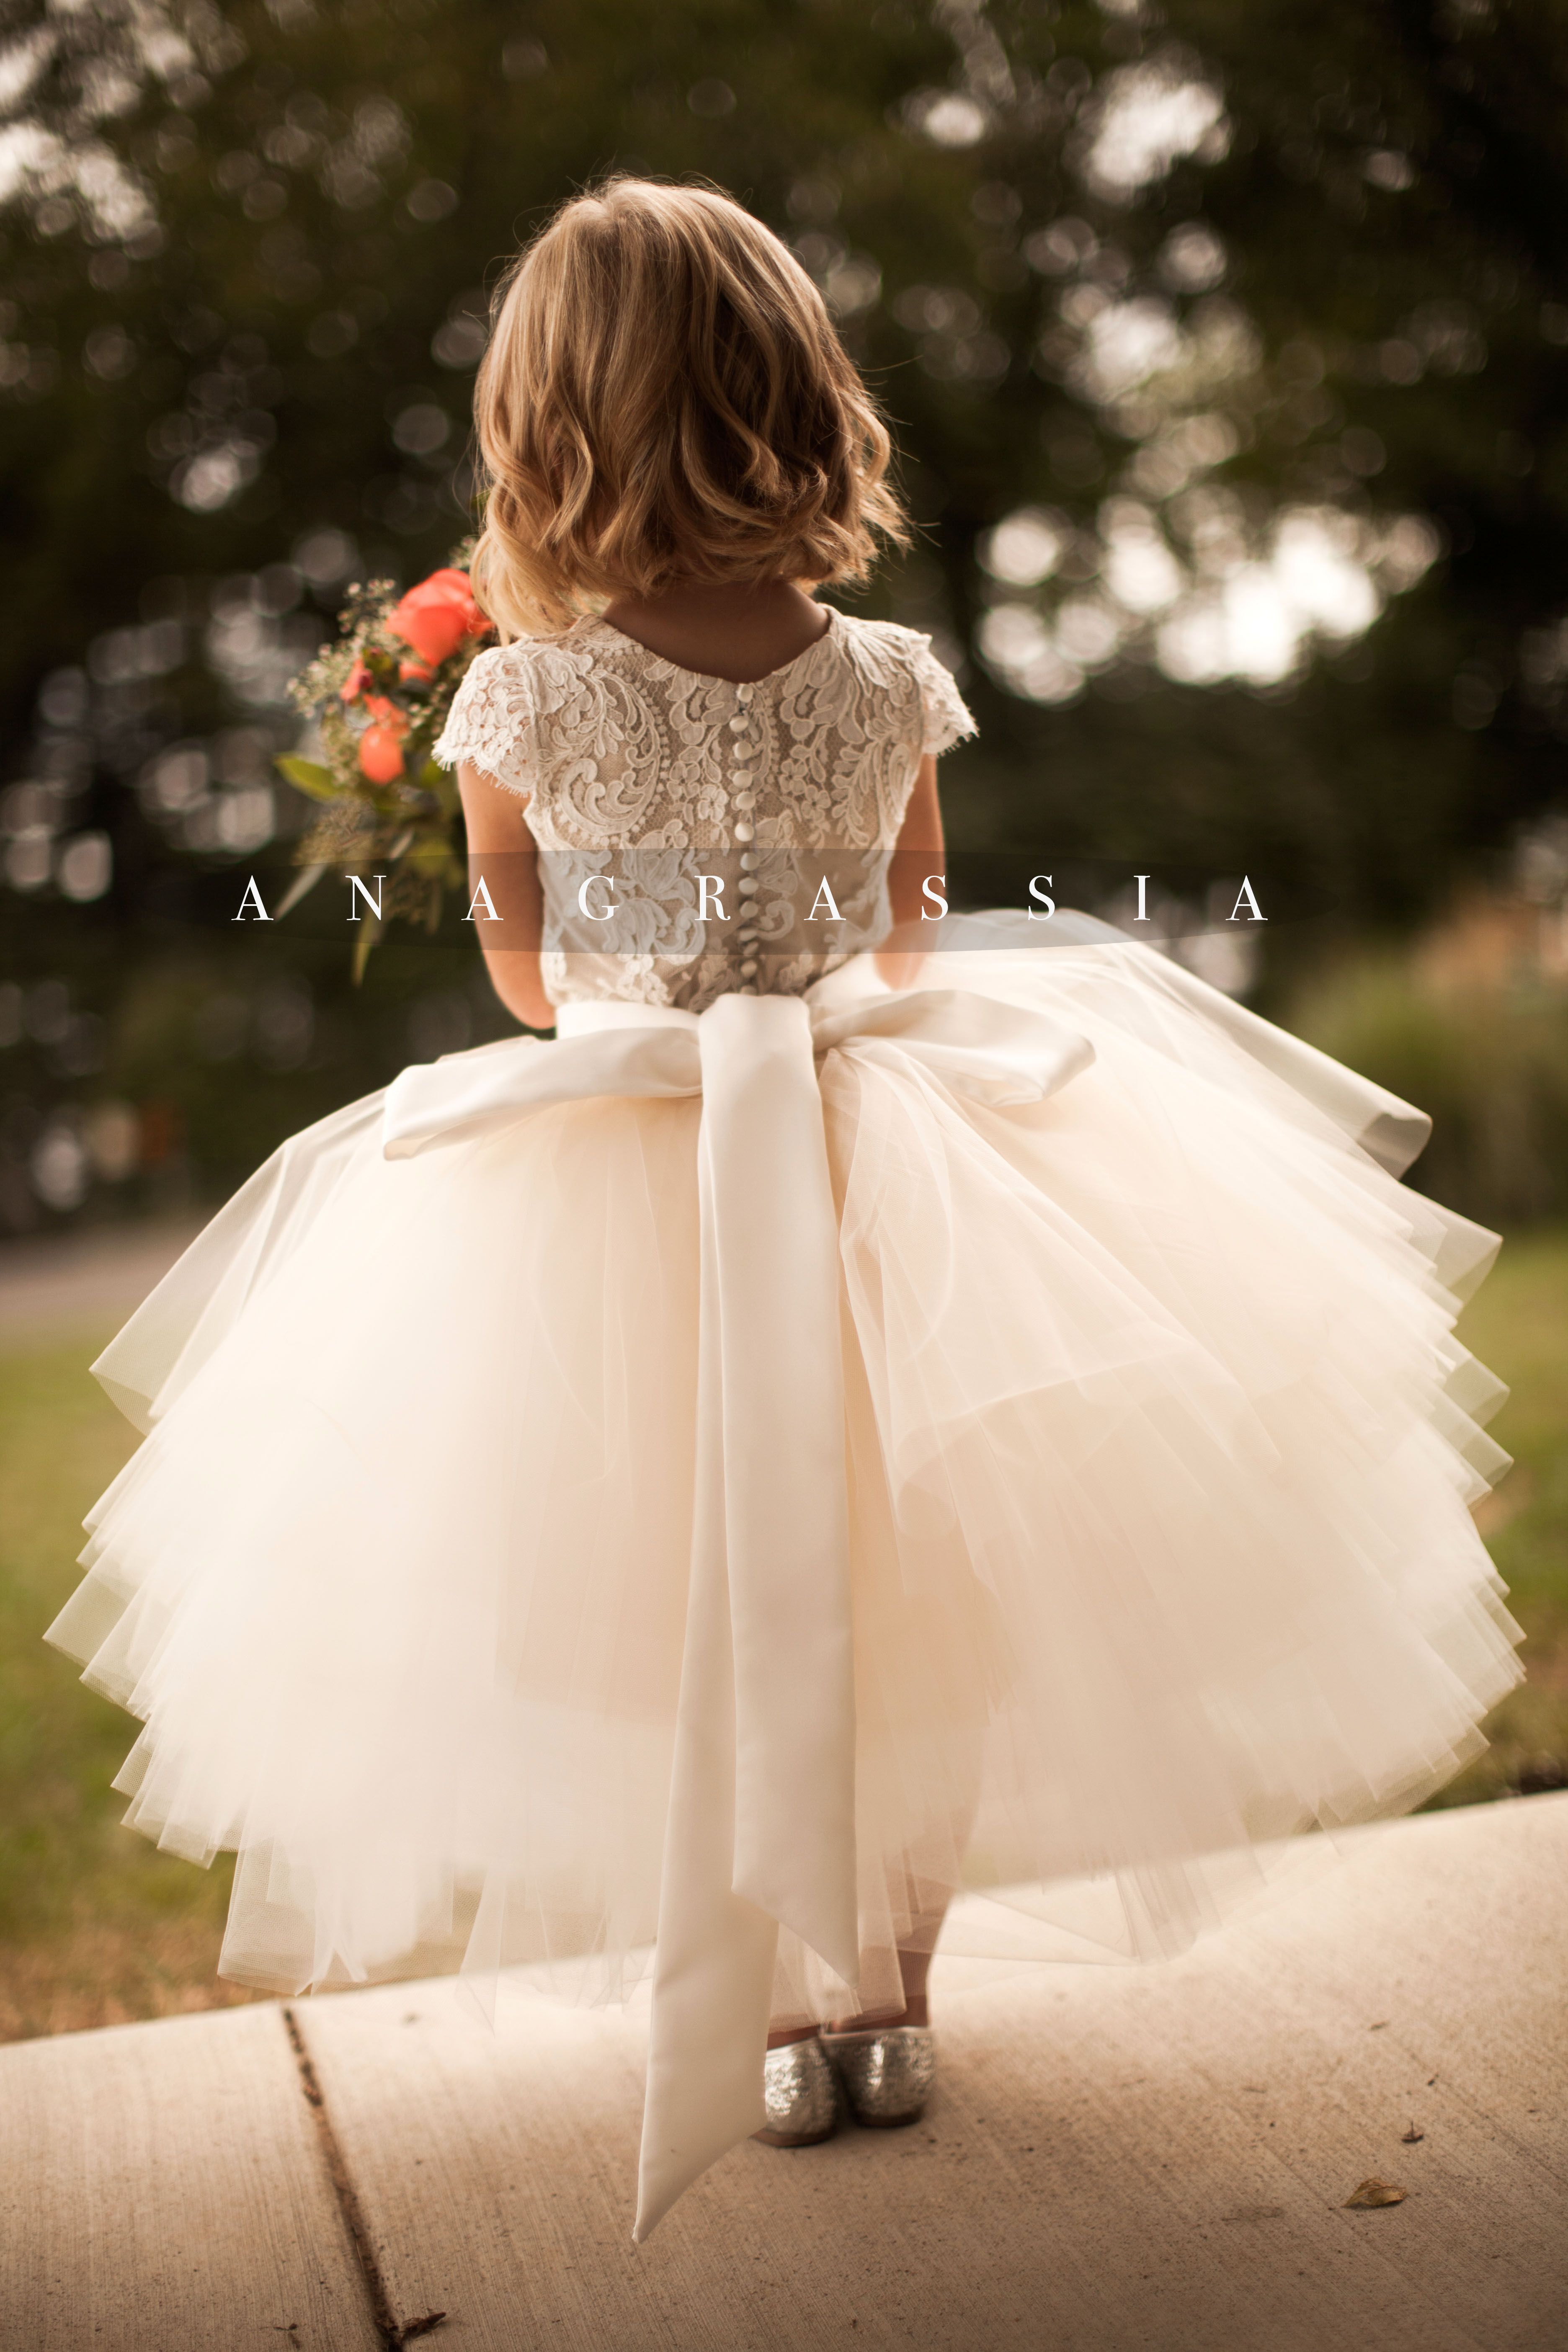 35e606fd7 ANAGRASSIA flower girl dresses: ivory/champagne lace leotard & bodysuit  with champagne/ivory/white tulle skirt and satin sash www.anagrassia.com  just now